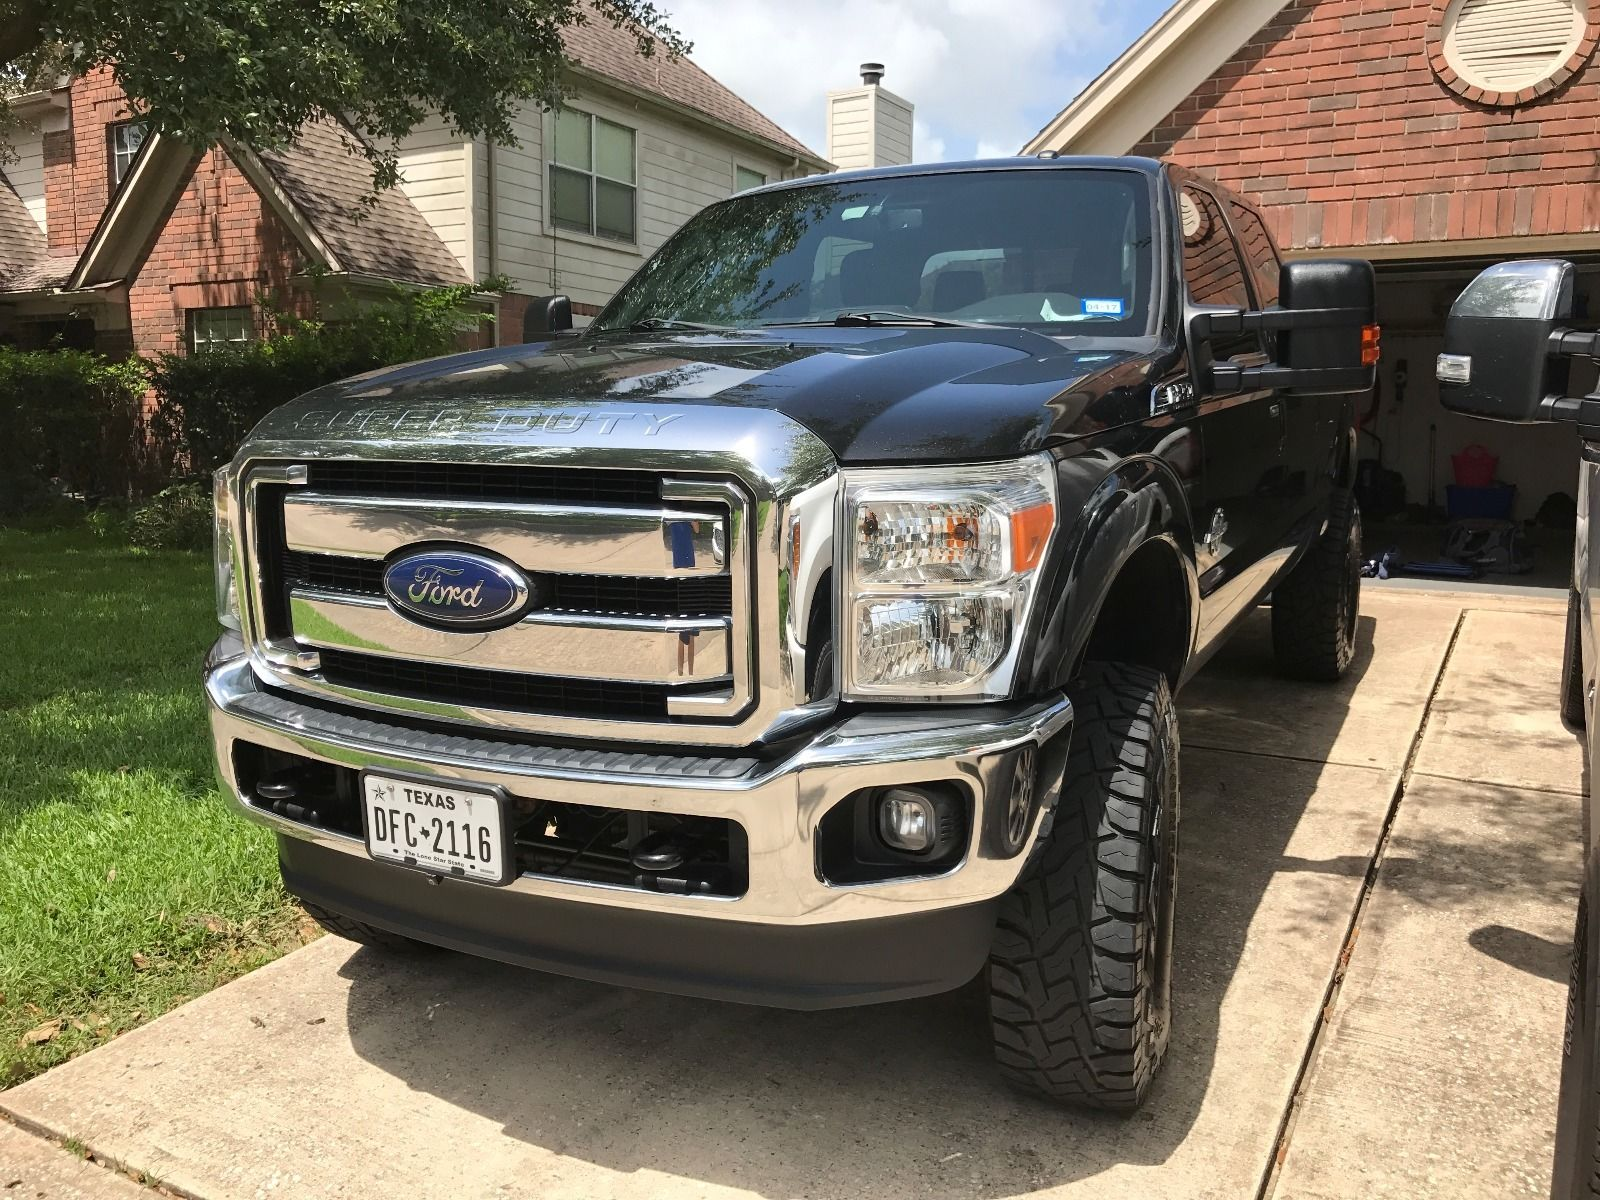 2017 Ford F250 Lifted >> Super clean 2014 Ford F 250 lariat lifted for sale